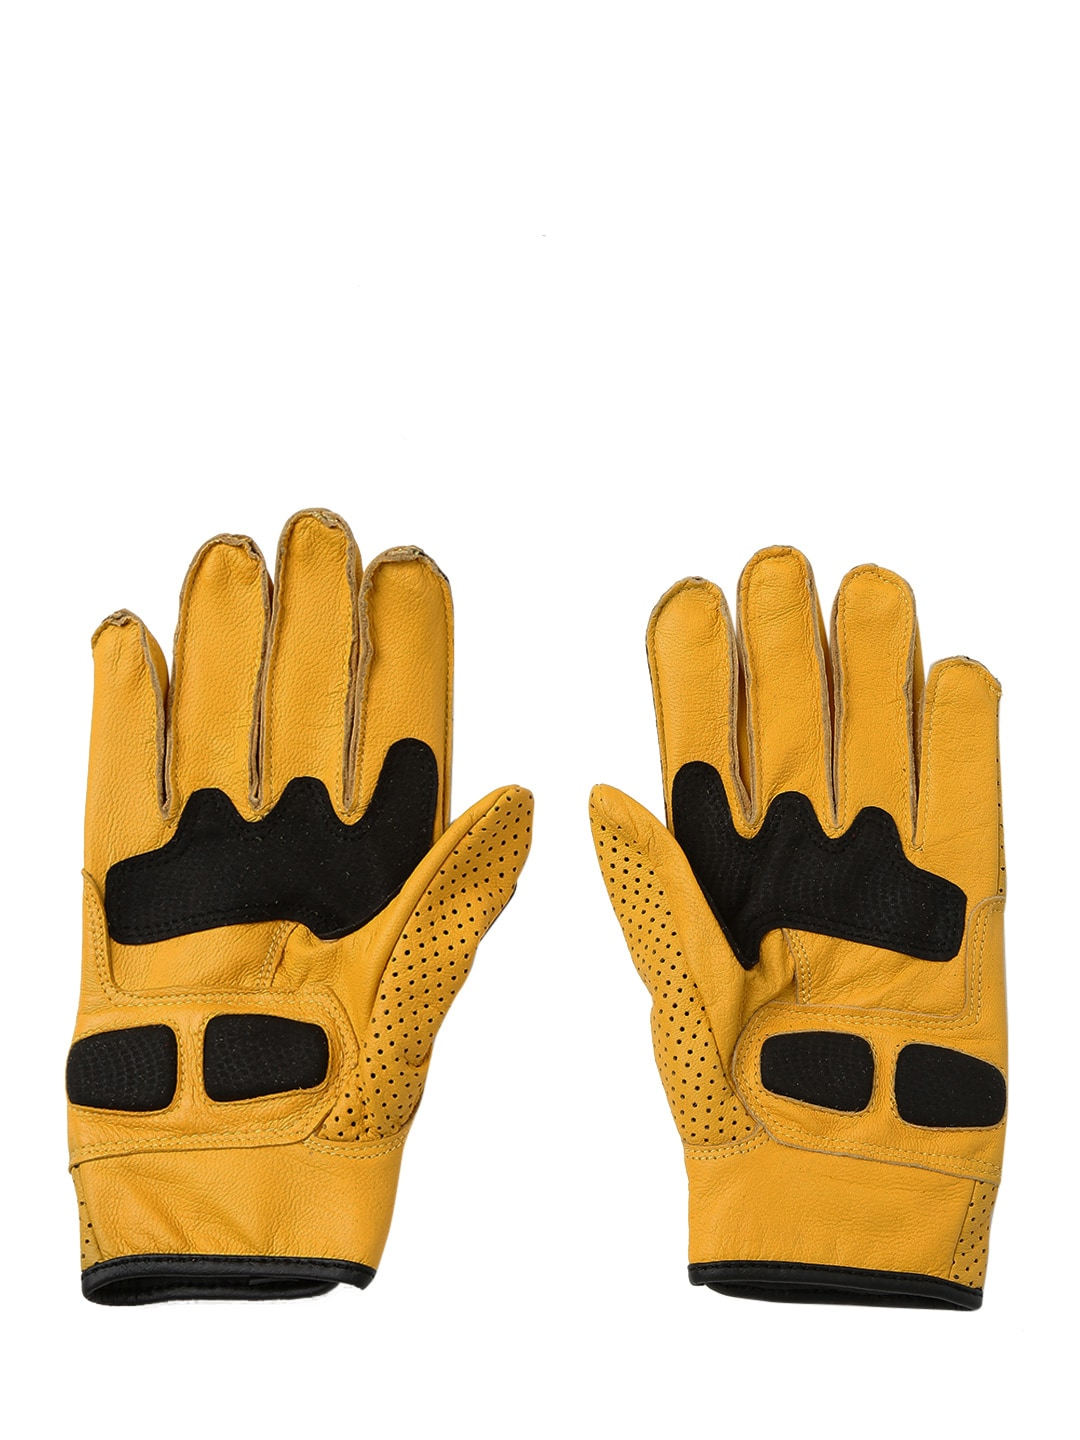 Motorcycle gloves online india - Motorcycle Gloves Online India 46